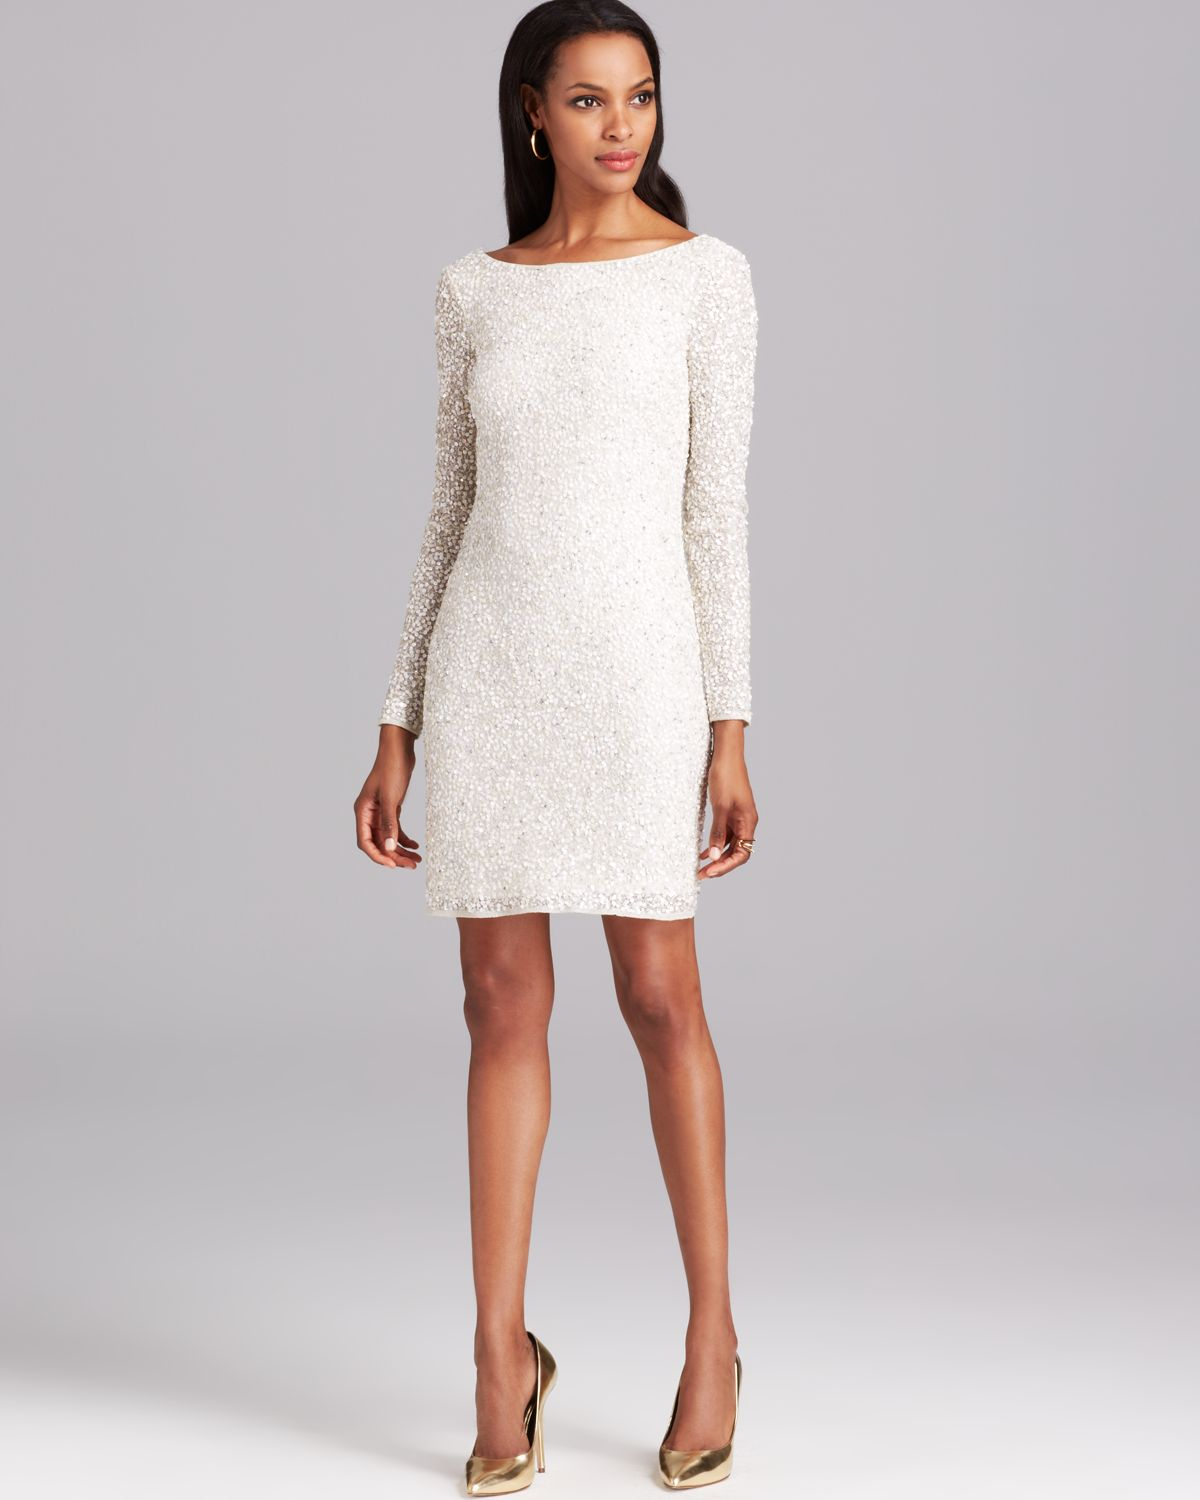 Short white dresses with long sleeves rare photo